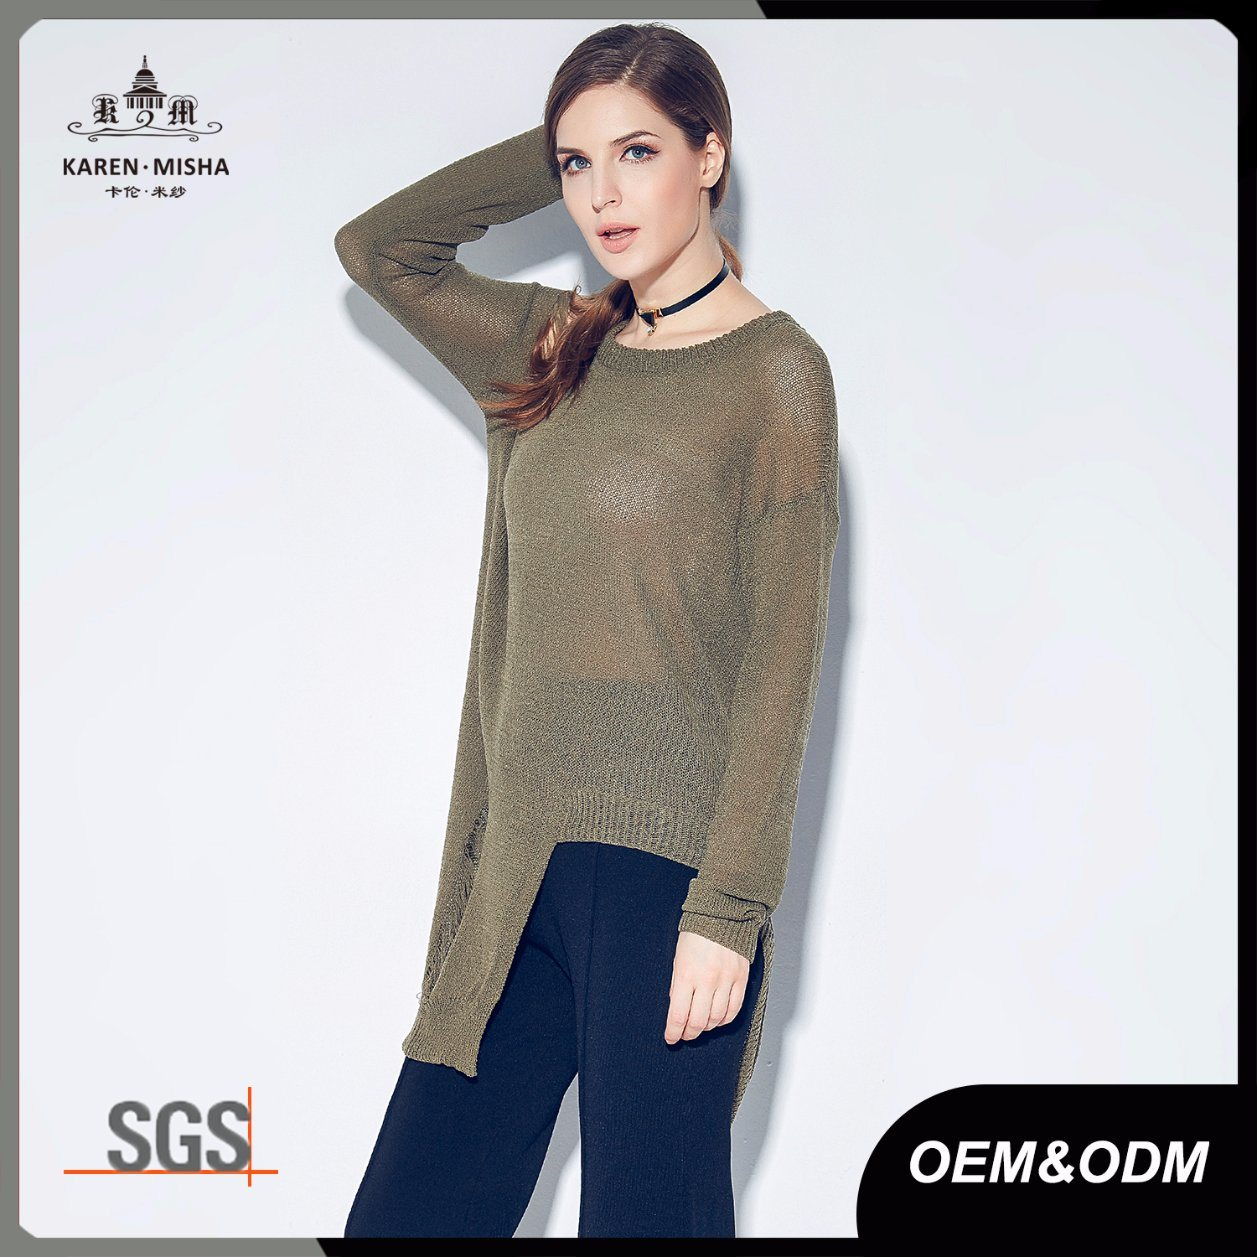 Longline Assymmetric Distressed Lader Womens Knitted Jumper